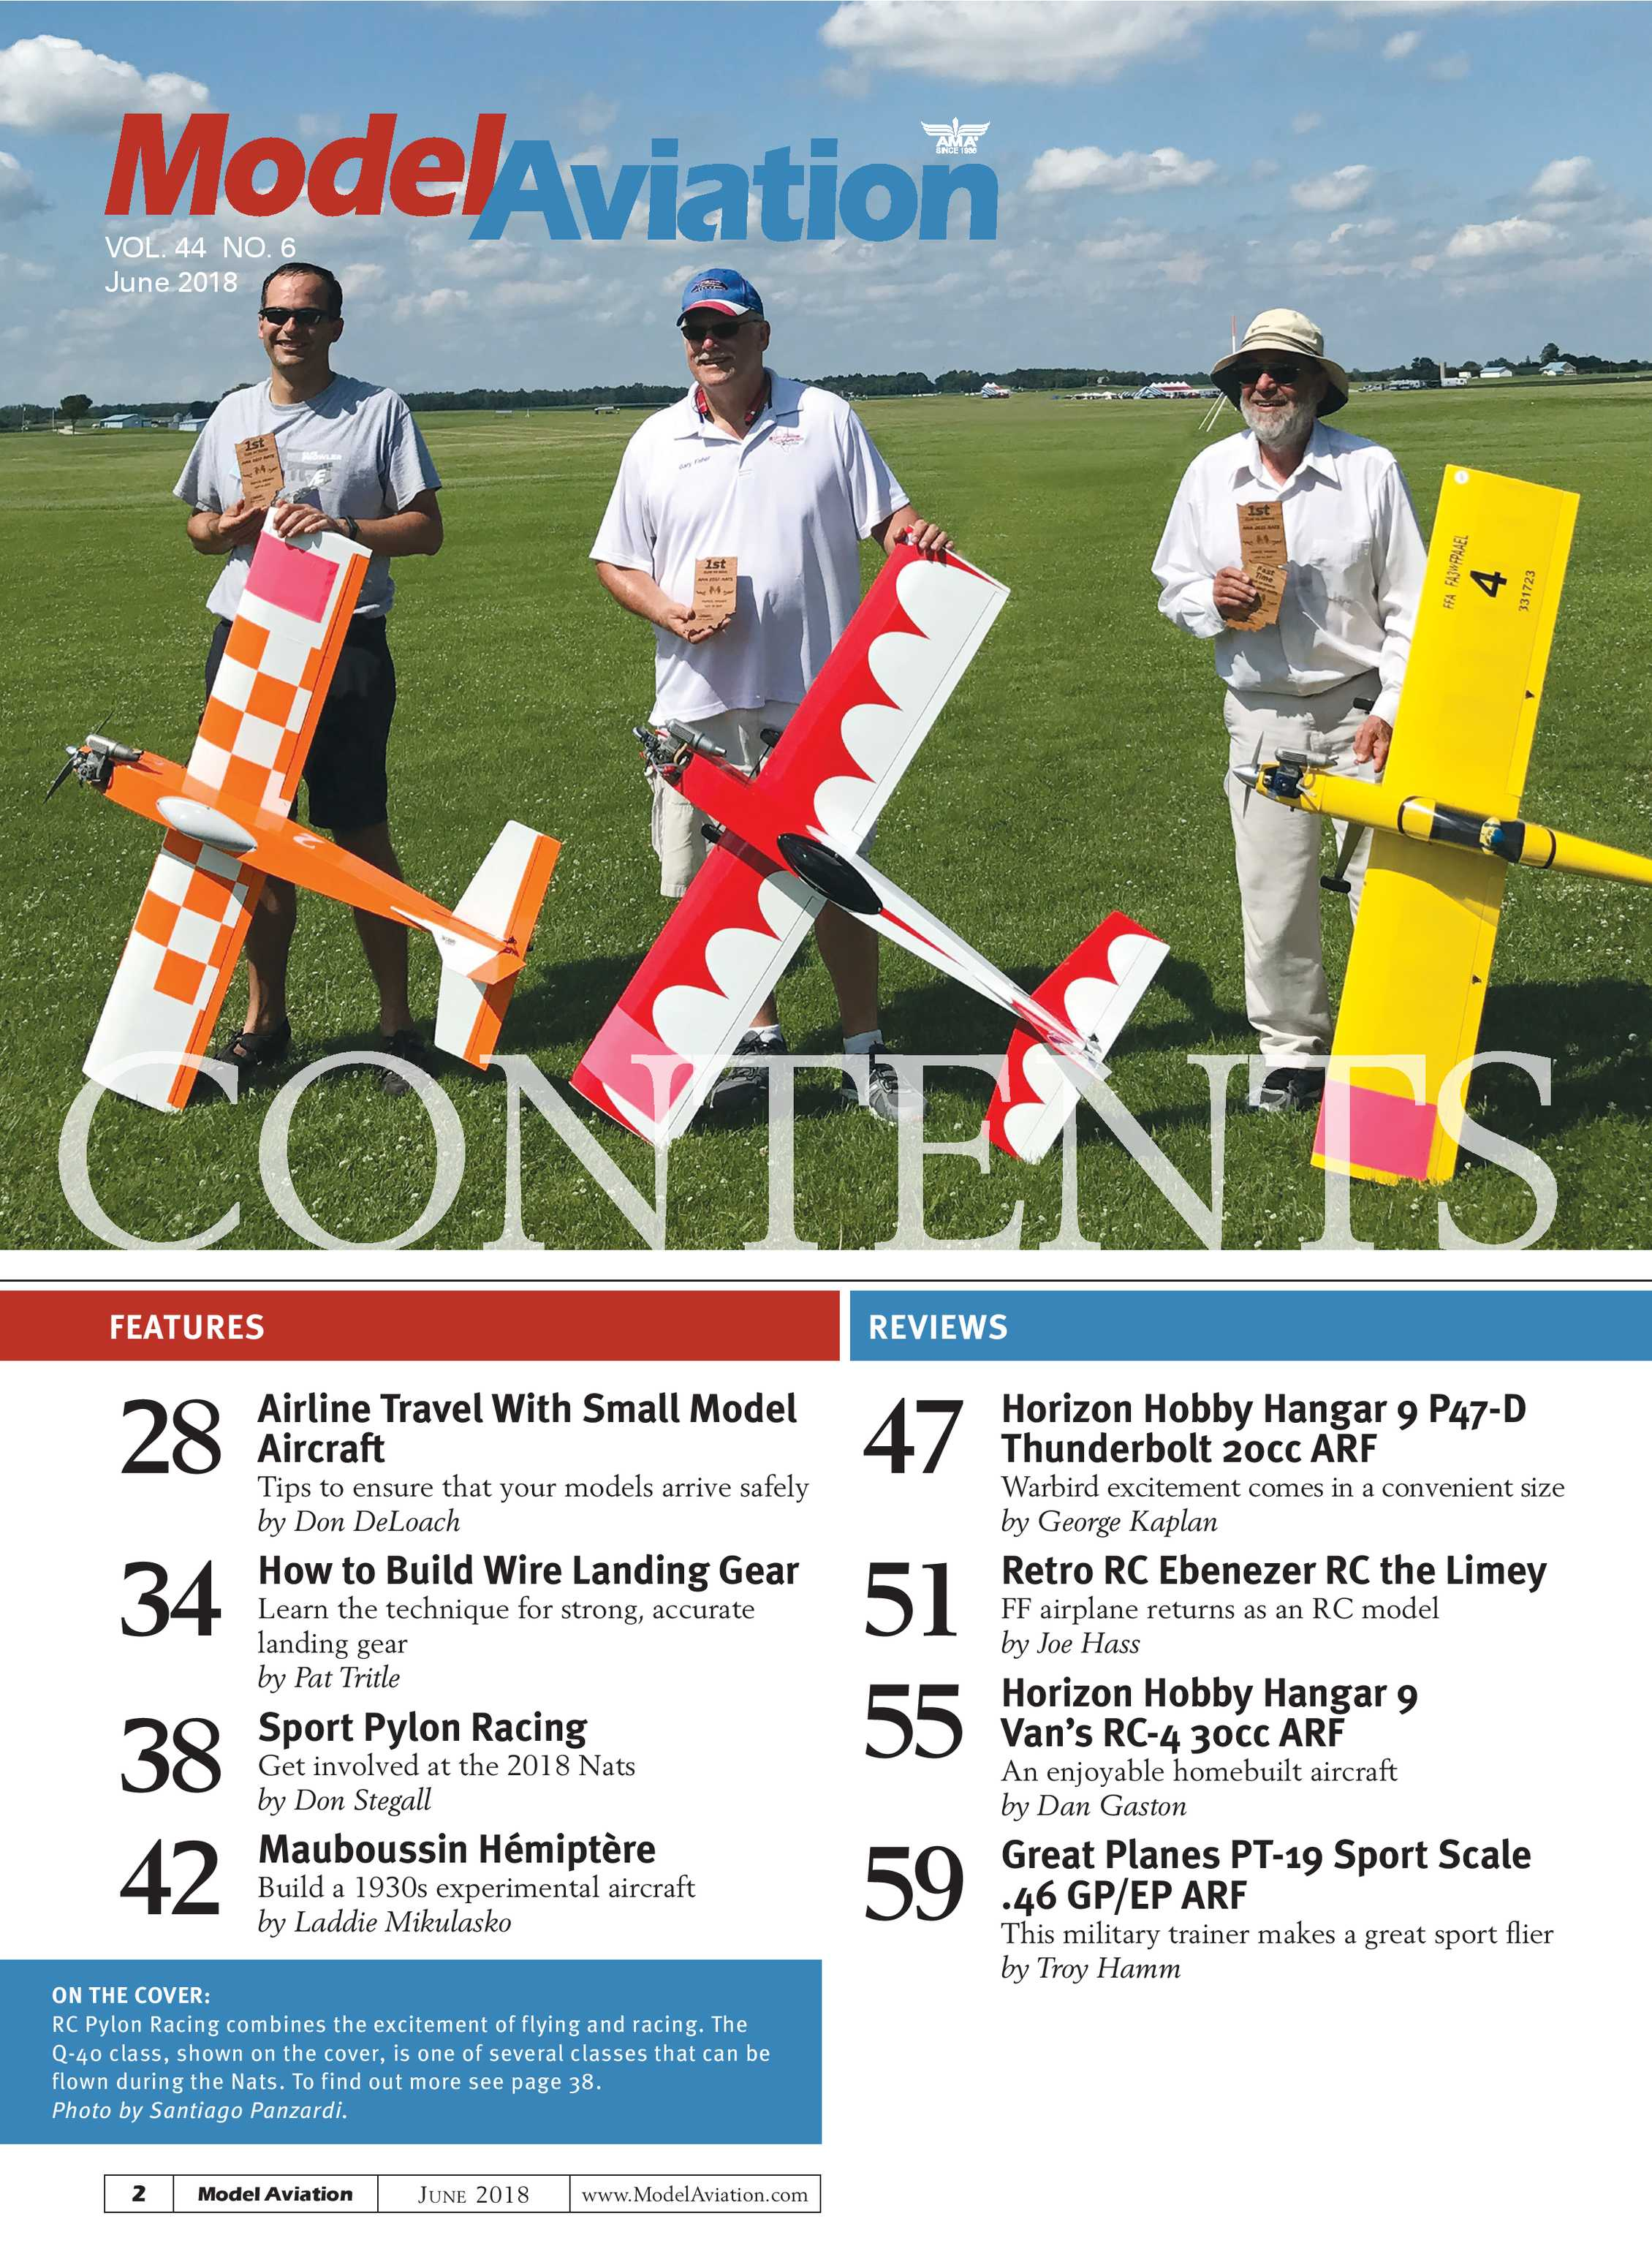 Model Aviation - June 2018 - page Cover